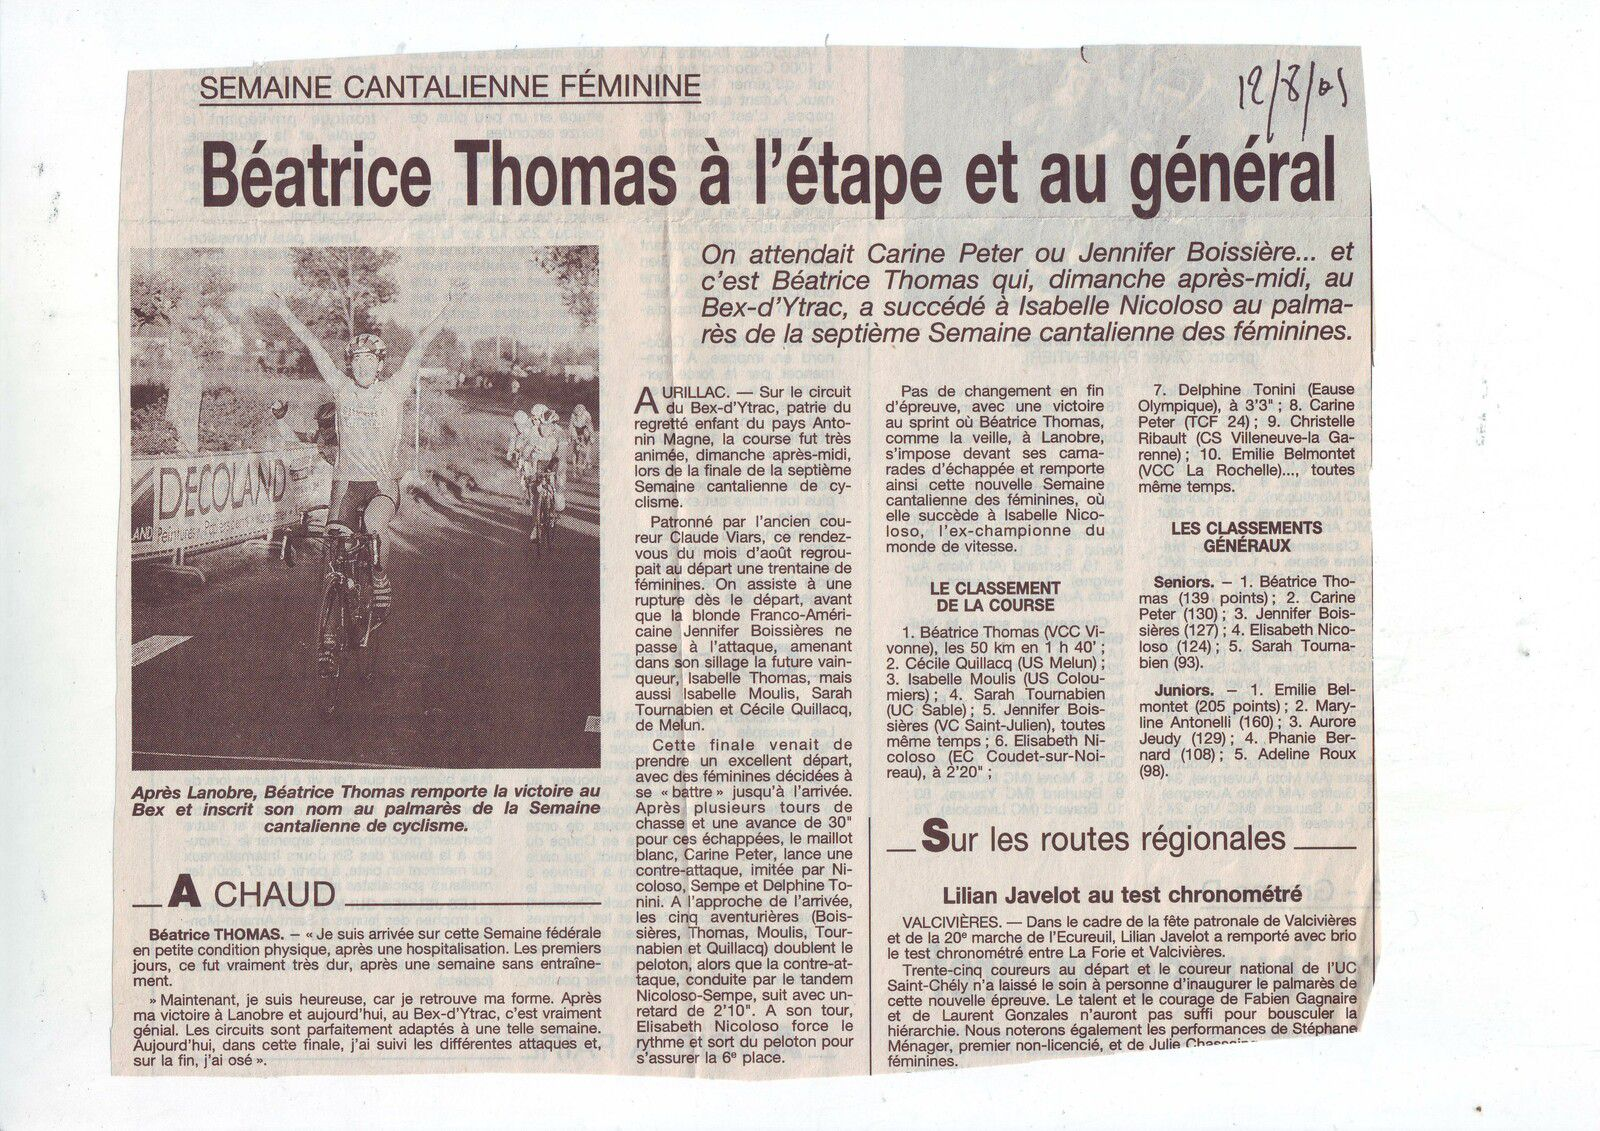 Il y a 20 ans ... Semaines cantaliennes 2001